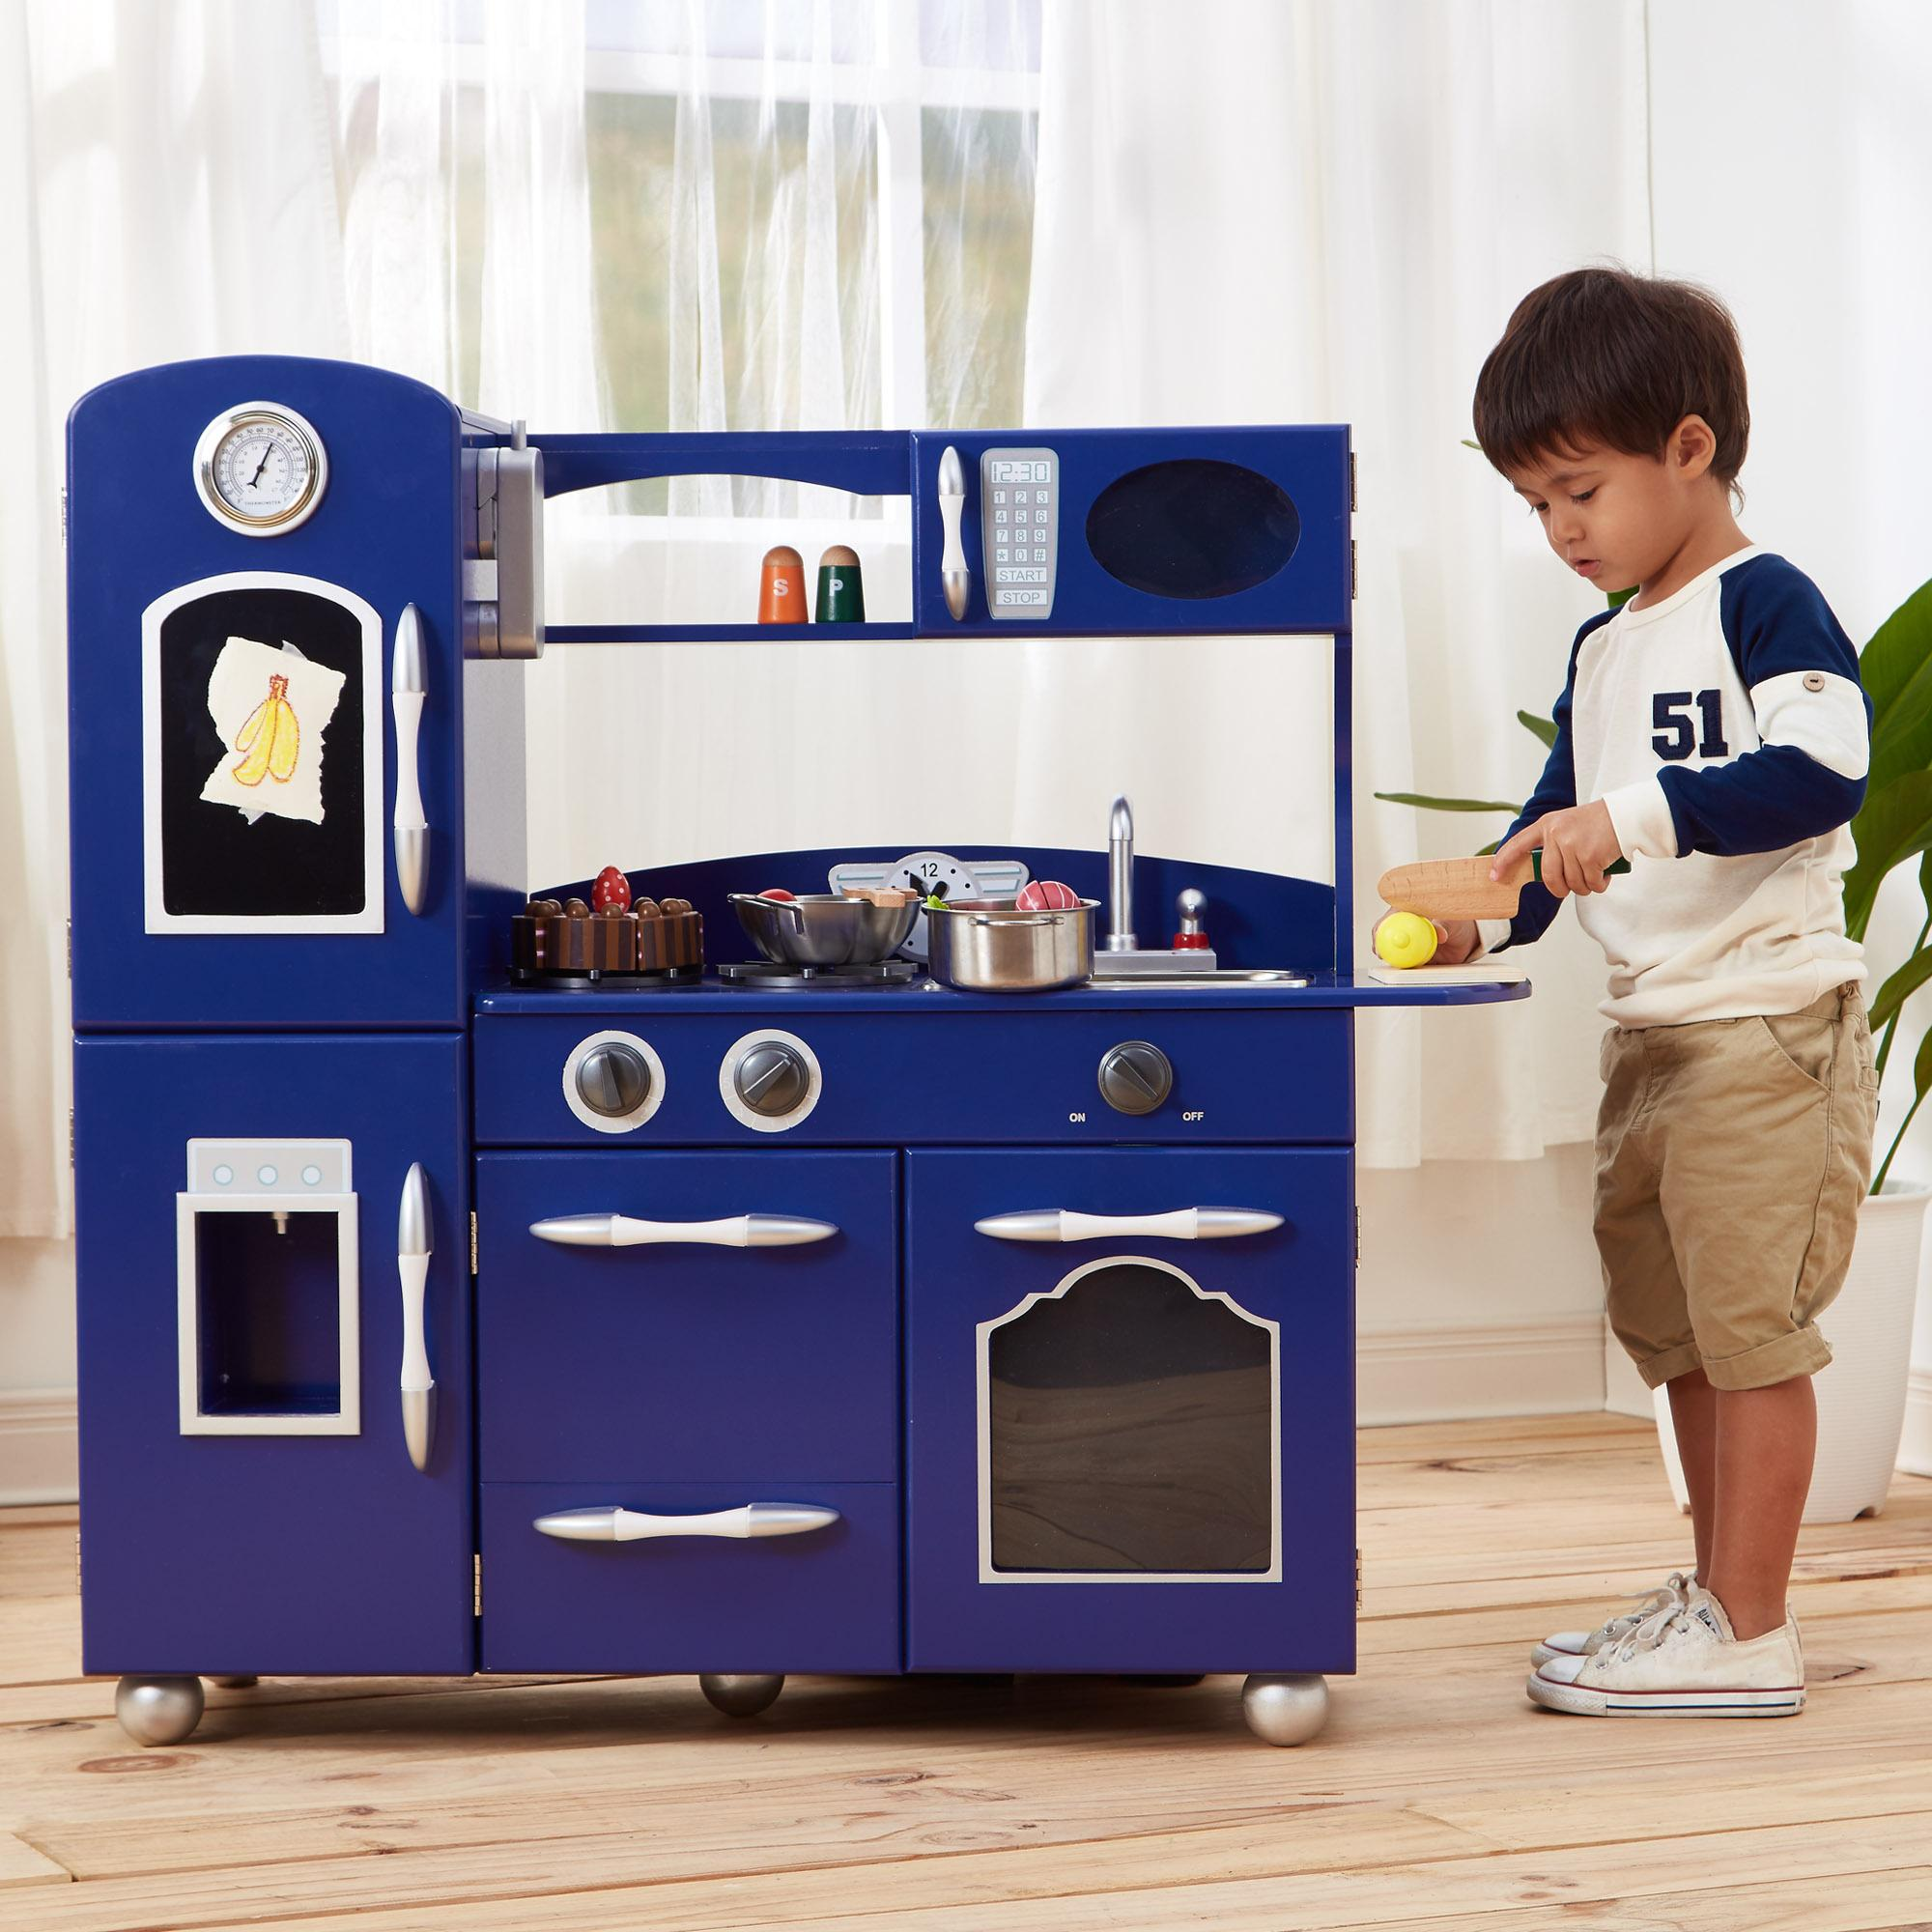 Teamson Kids Wooden Retro Play Kitchen For Toddler With Chalkboard Refrigerator Oven And